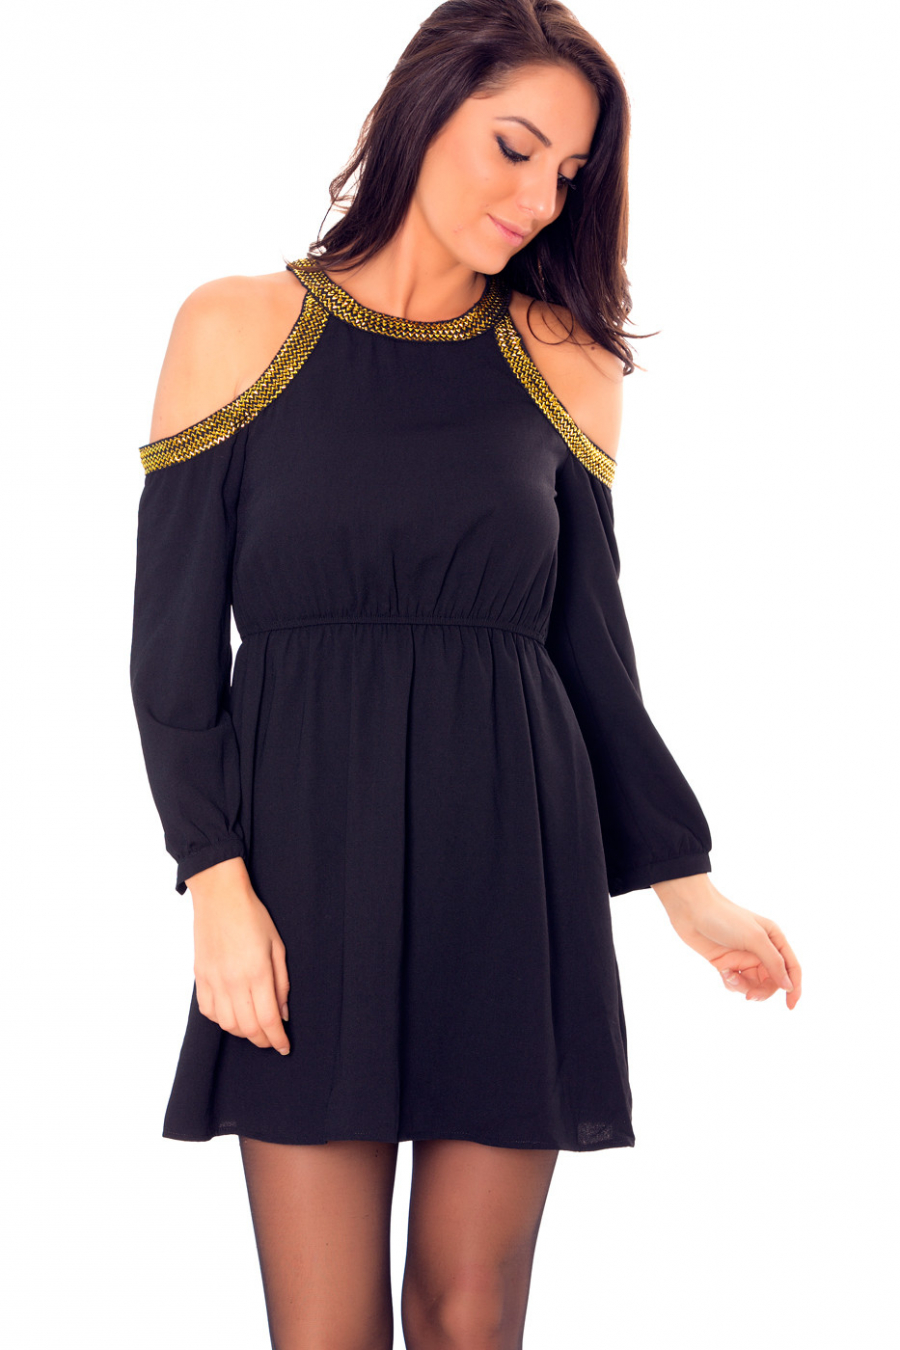 Lovely black evening dress with bare shoulders with gold trims. E-2558.